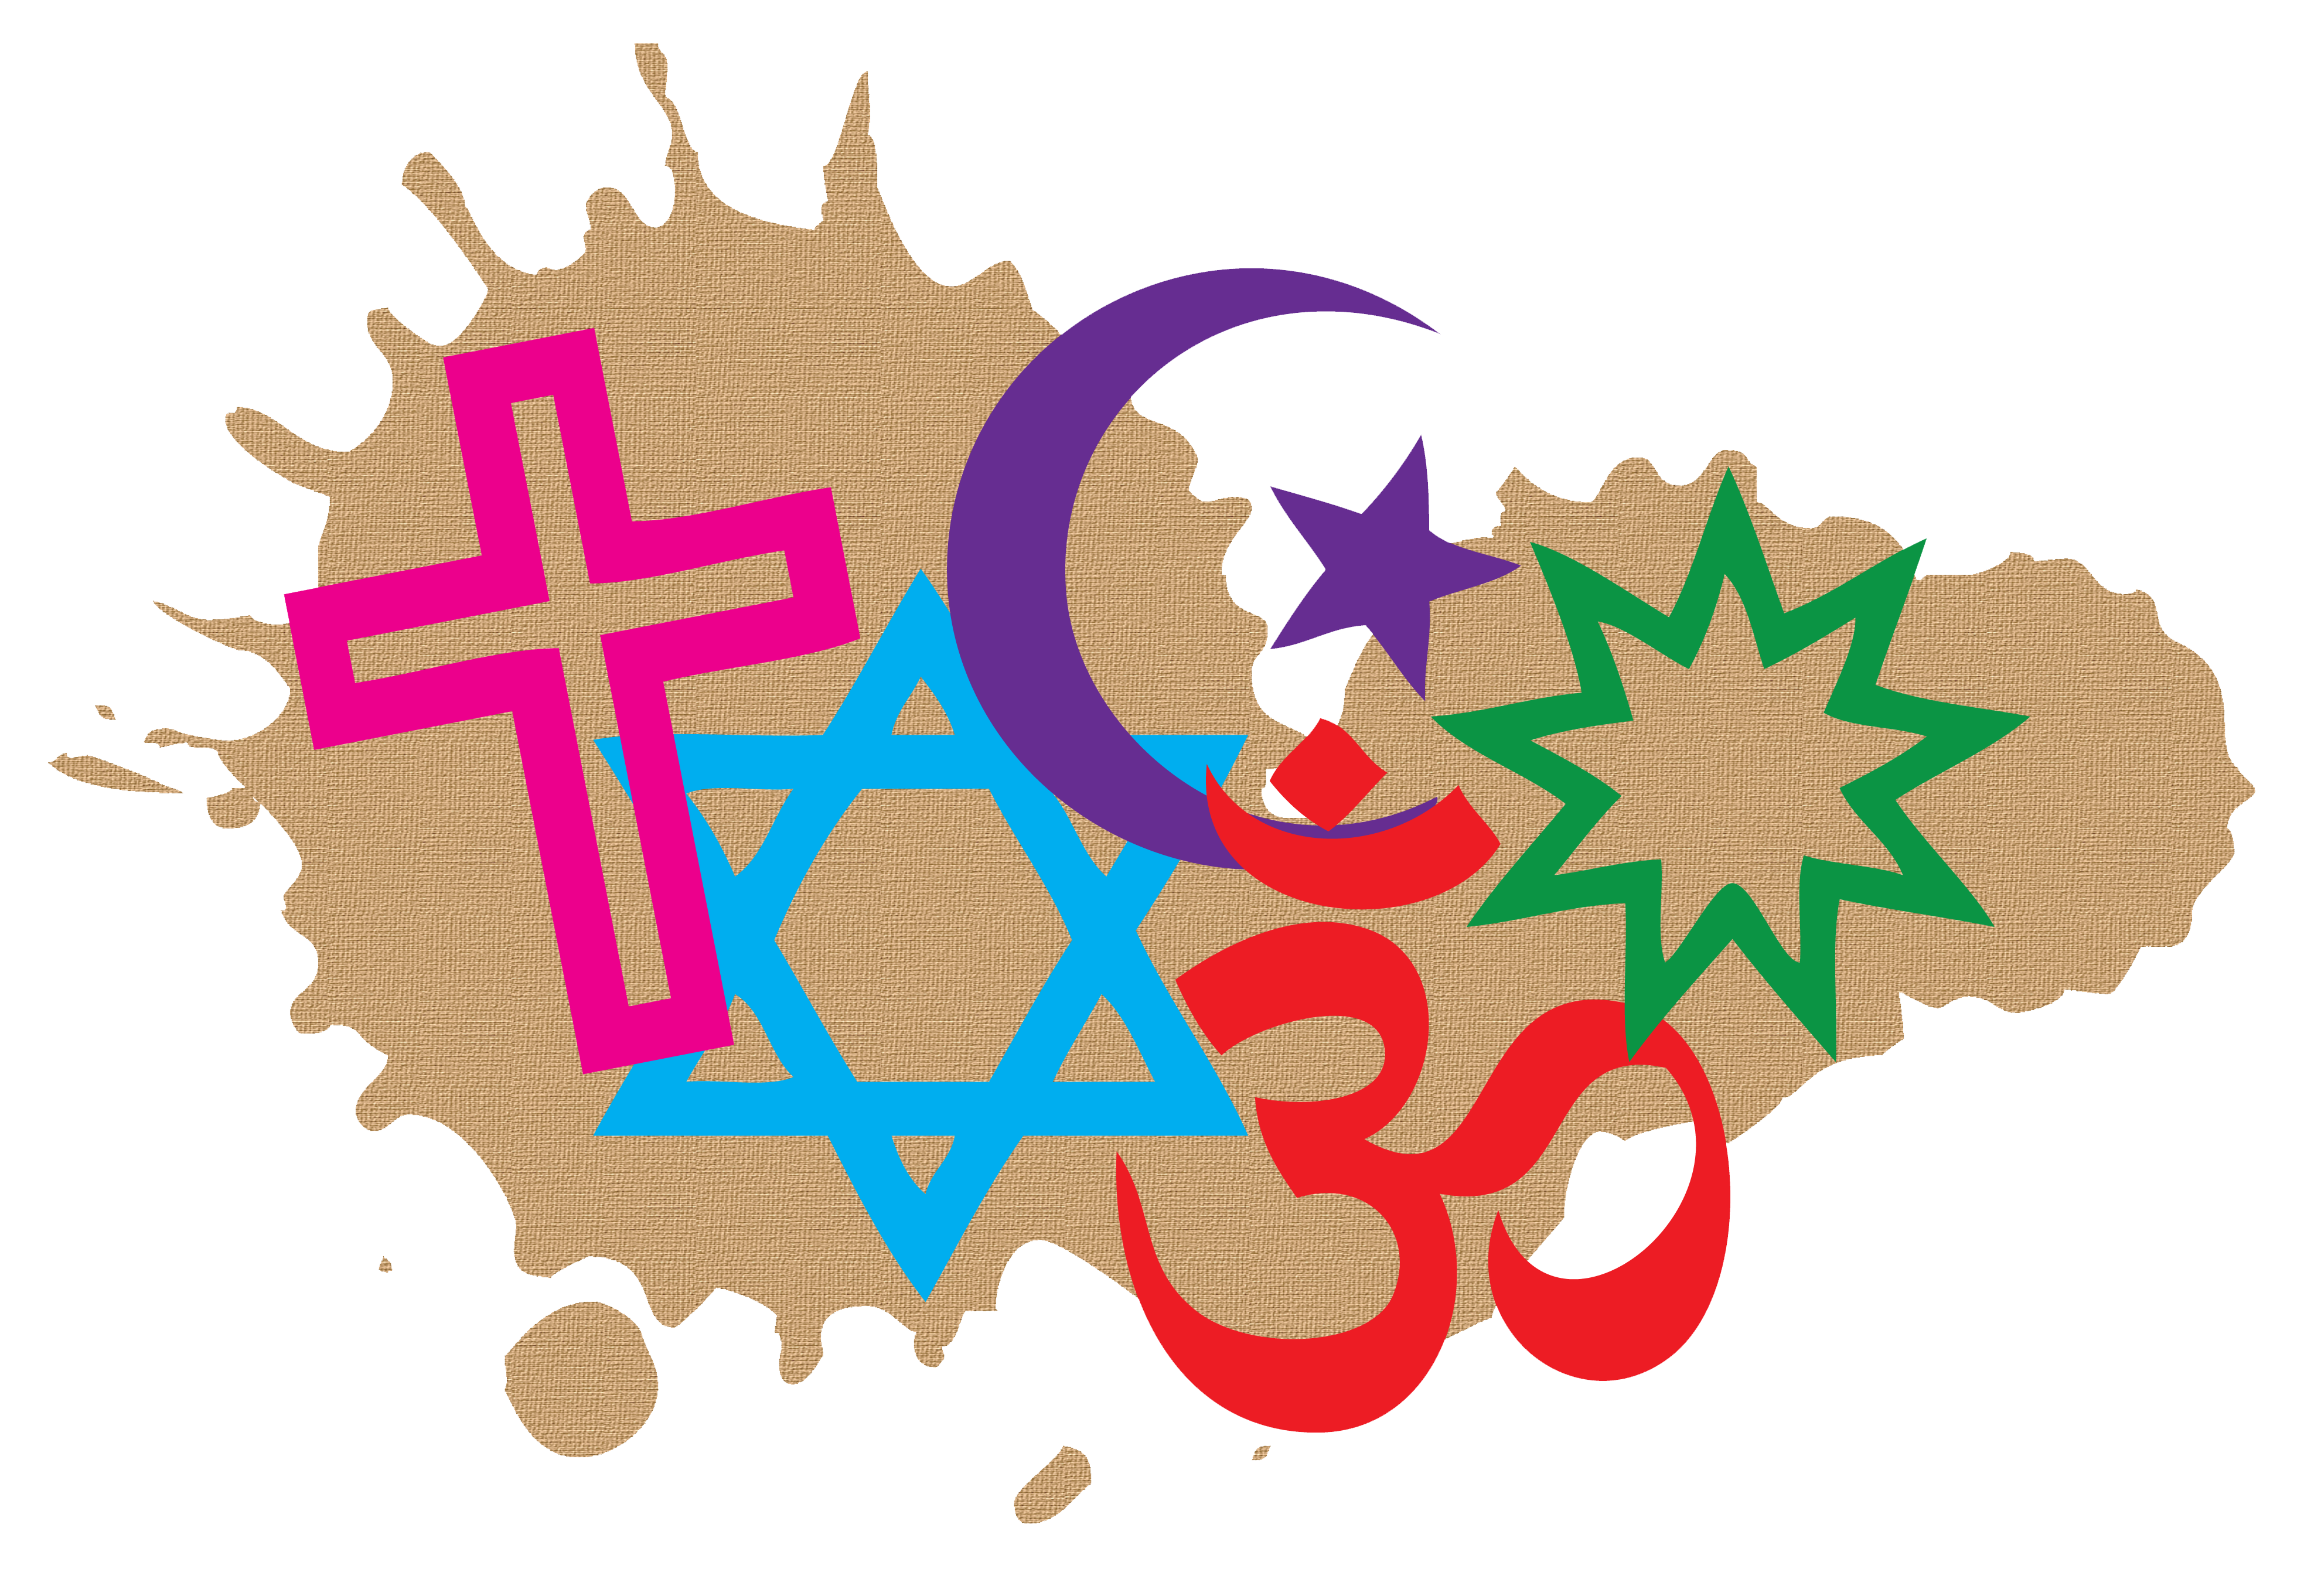 Religions clipart - Clipground